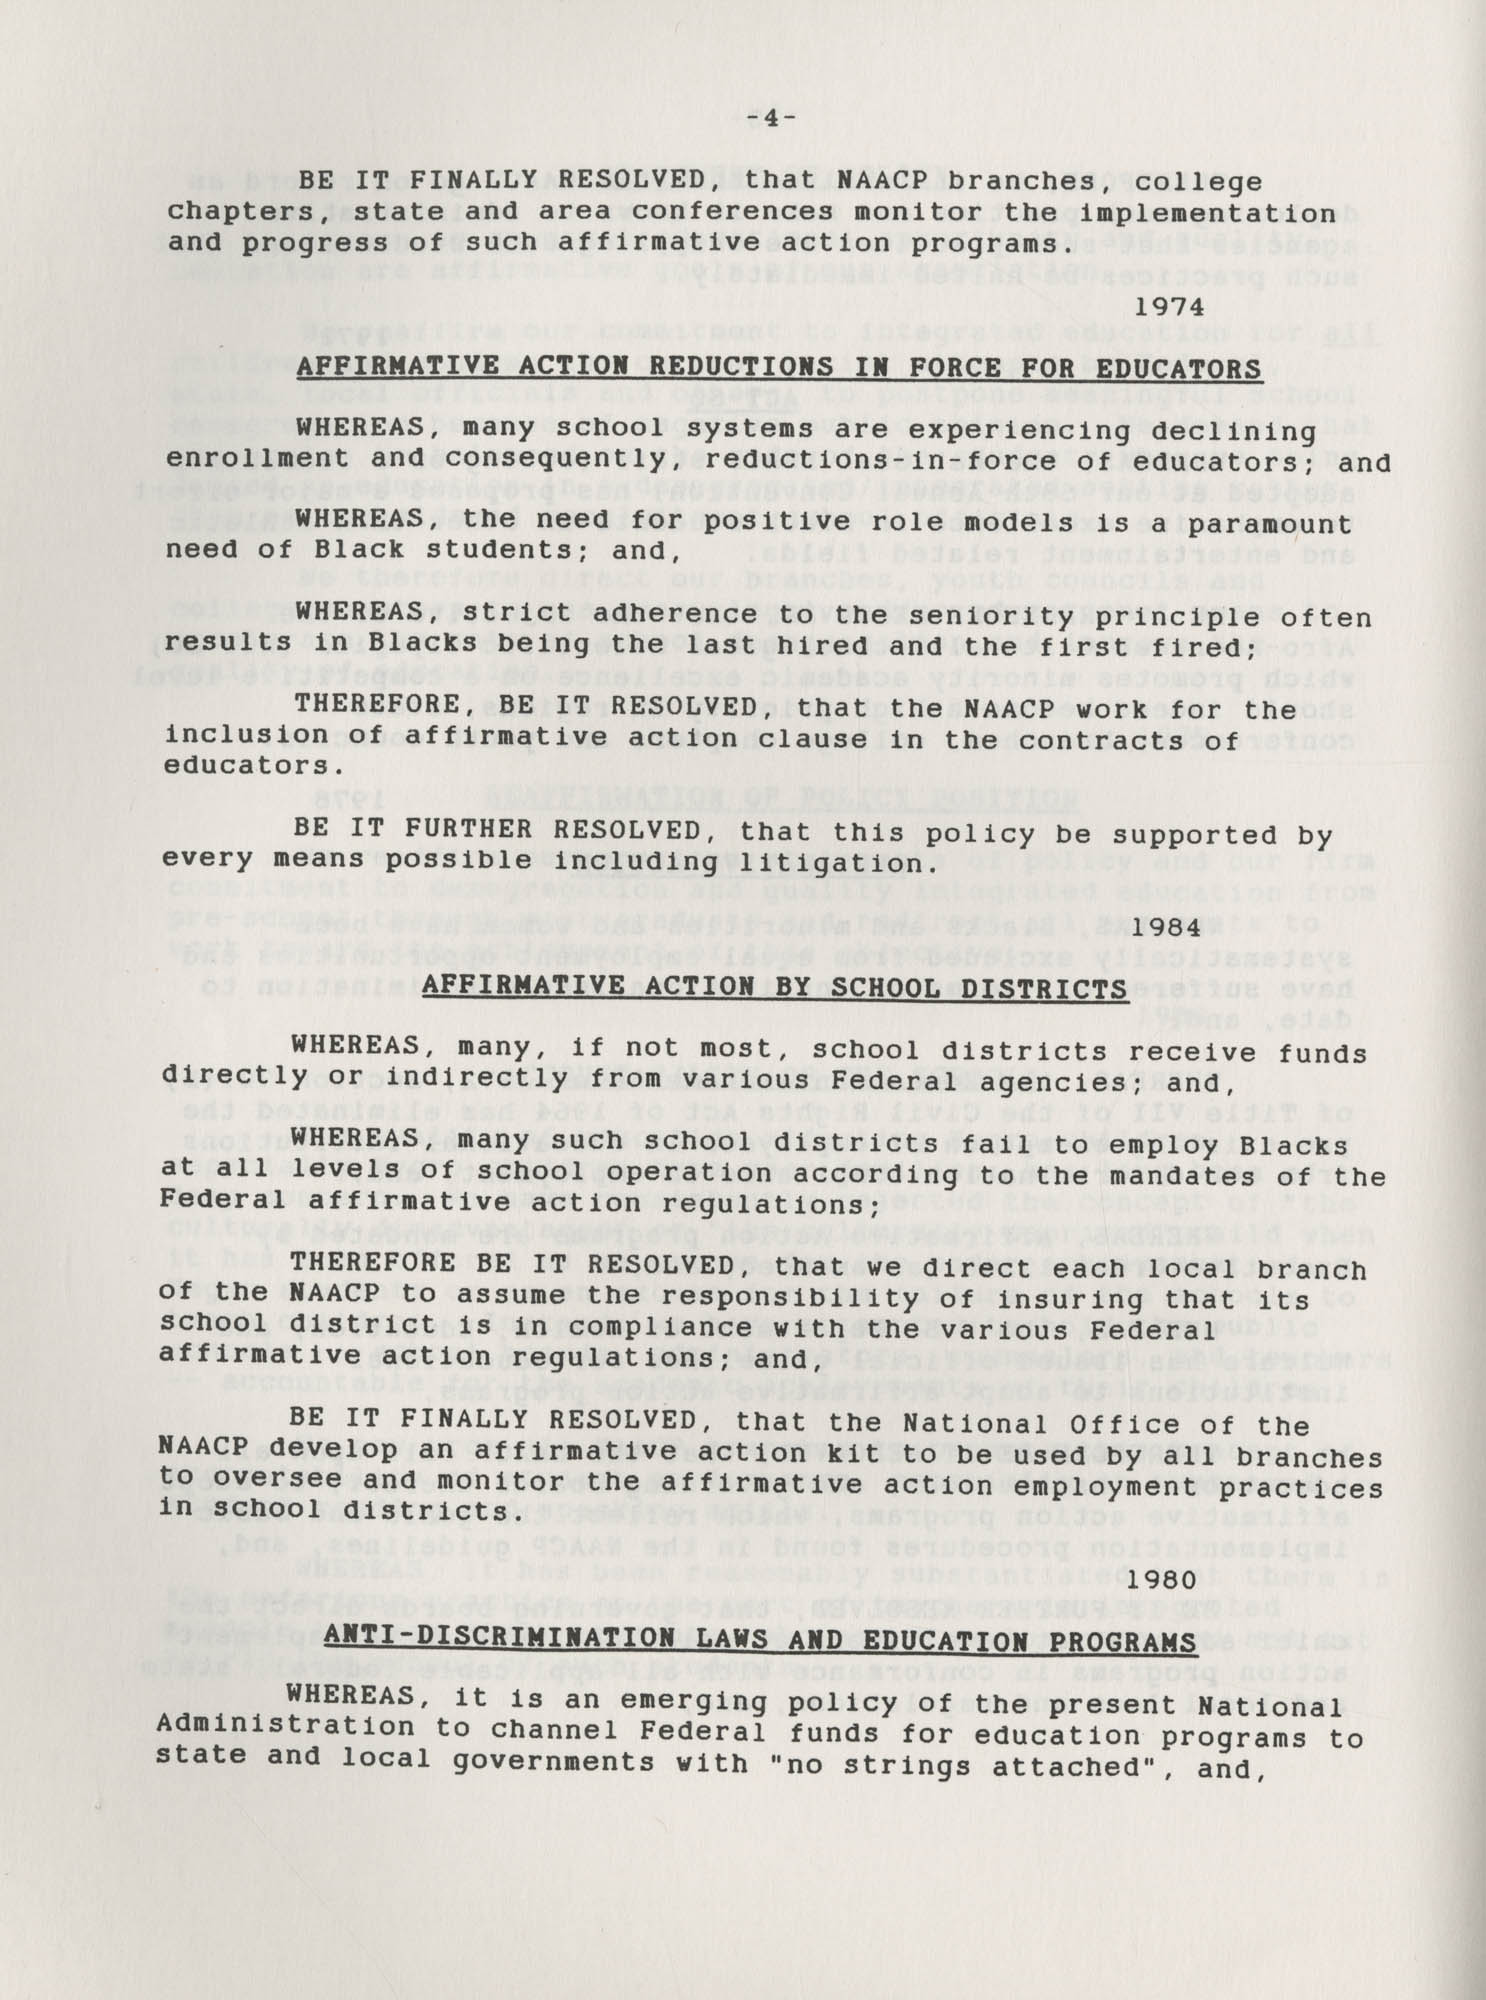 NAACP Resolutions on Education, 1970-1989, Index to Education Resolutions, Page 4